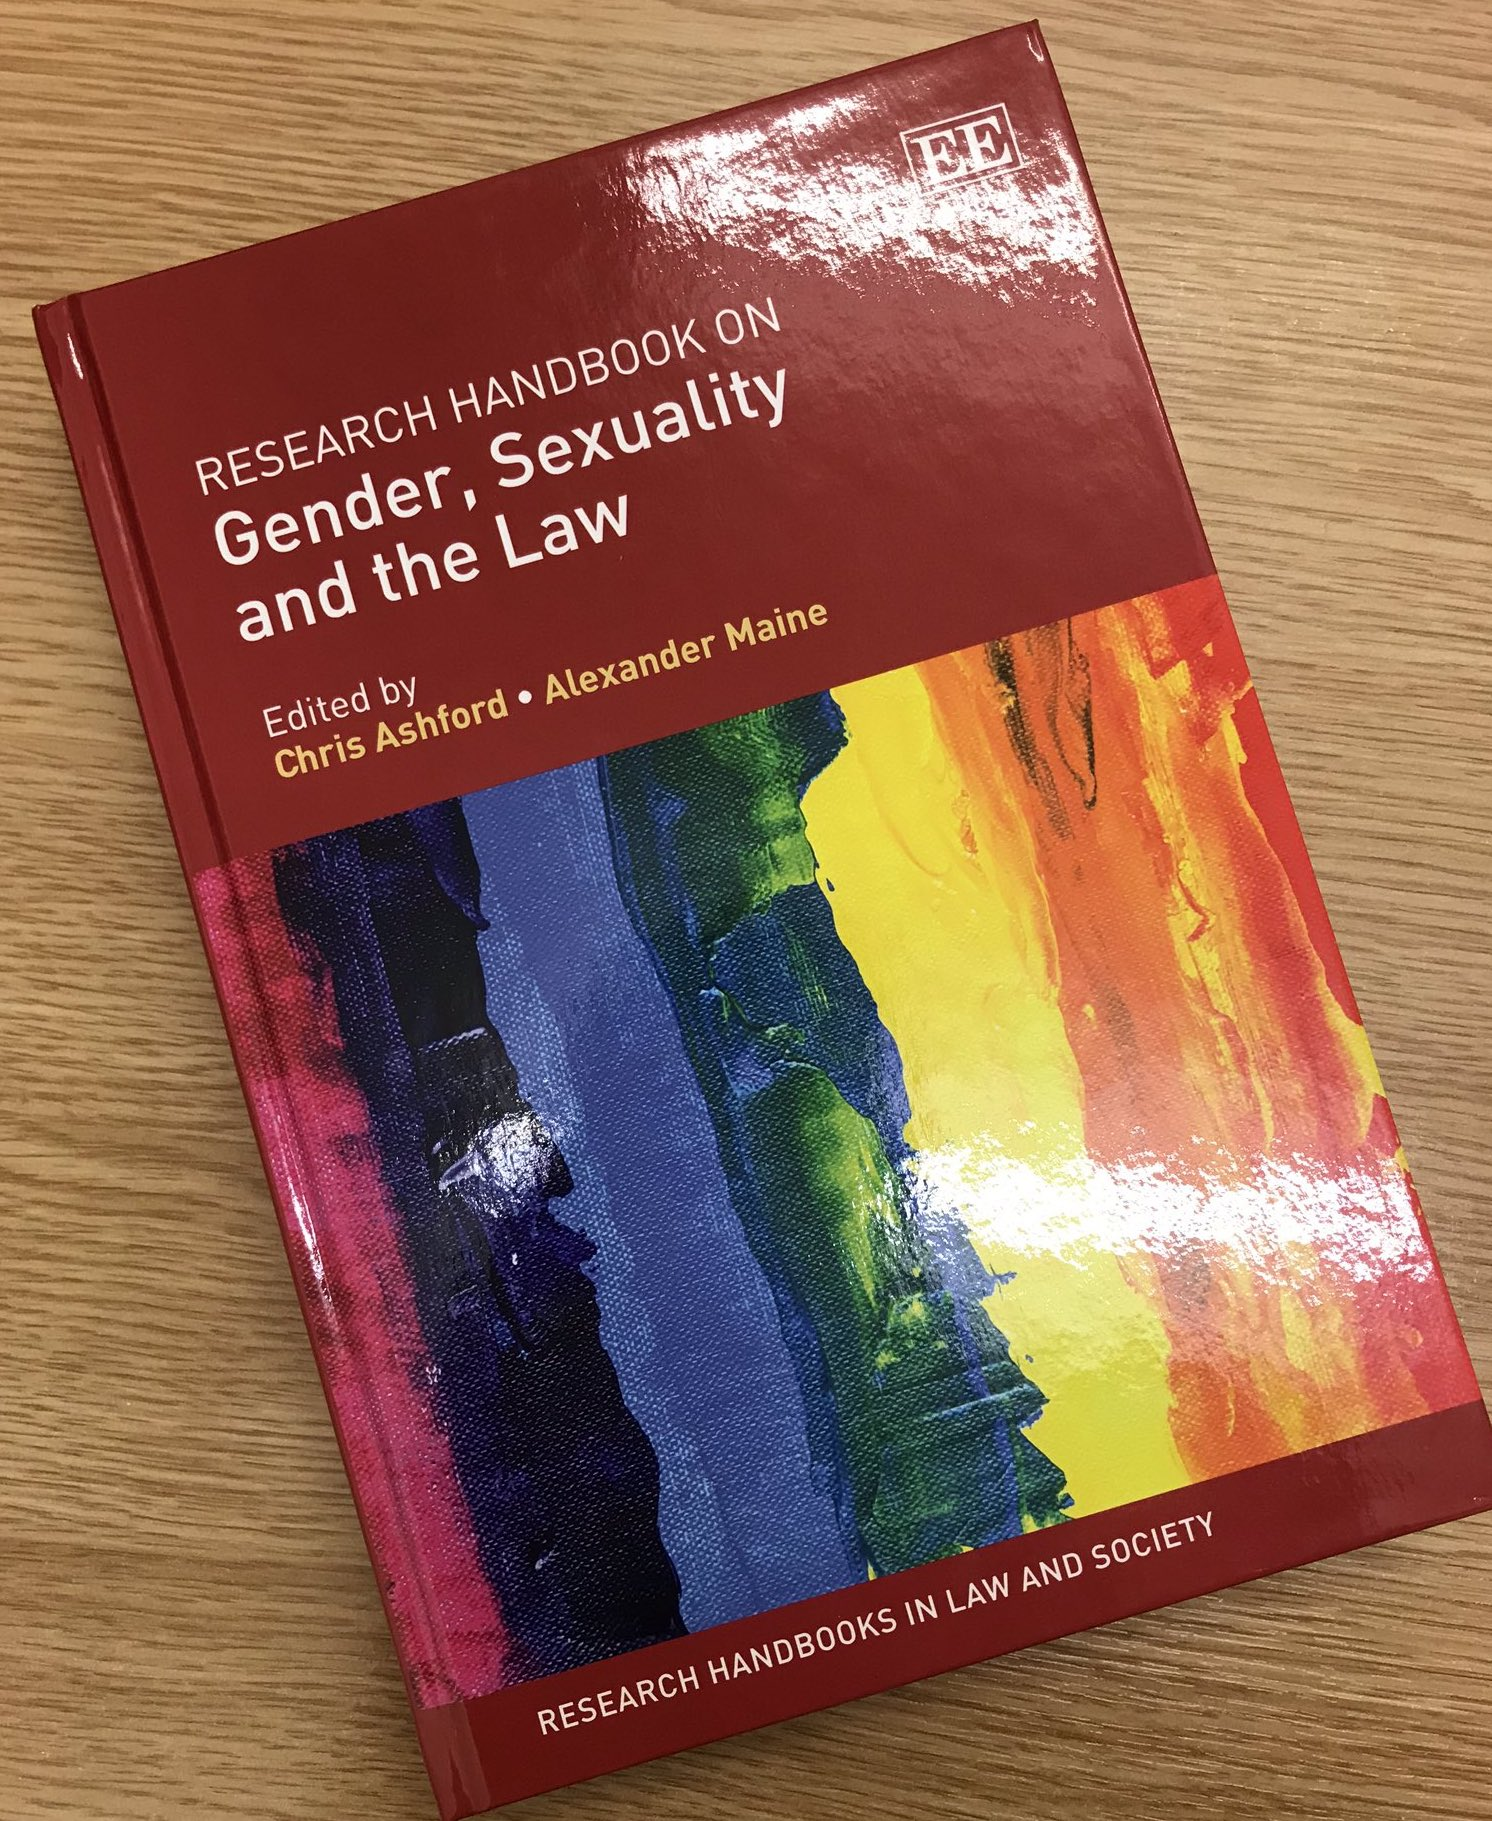 Book: Gender, sexuality and the Law